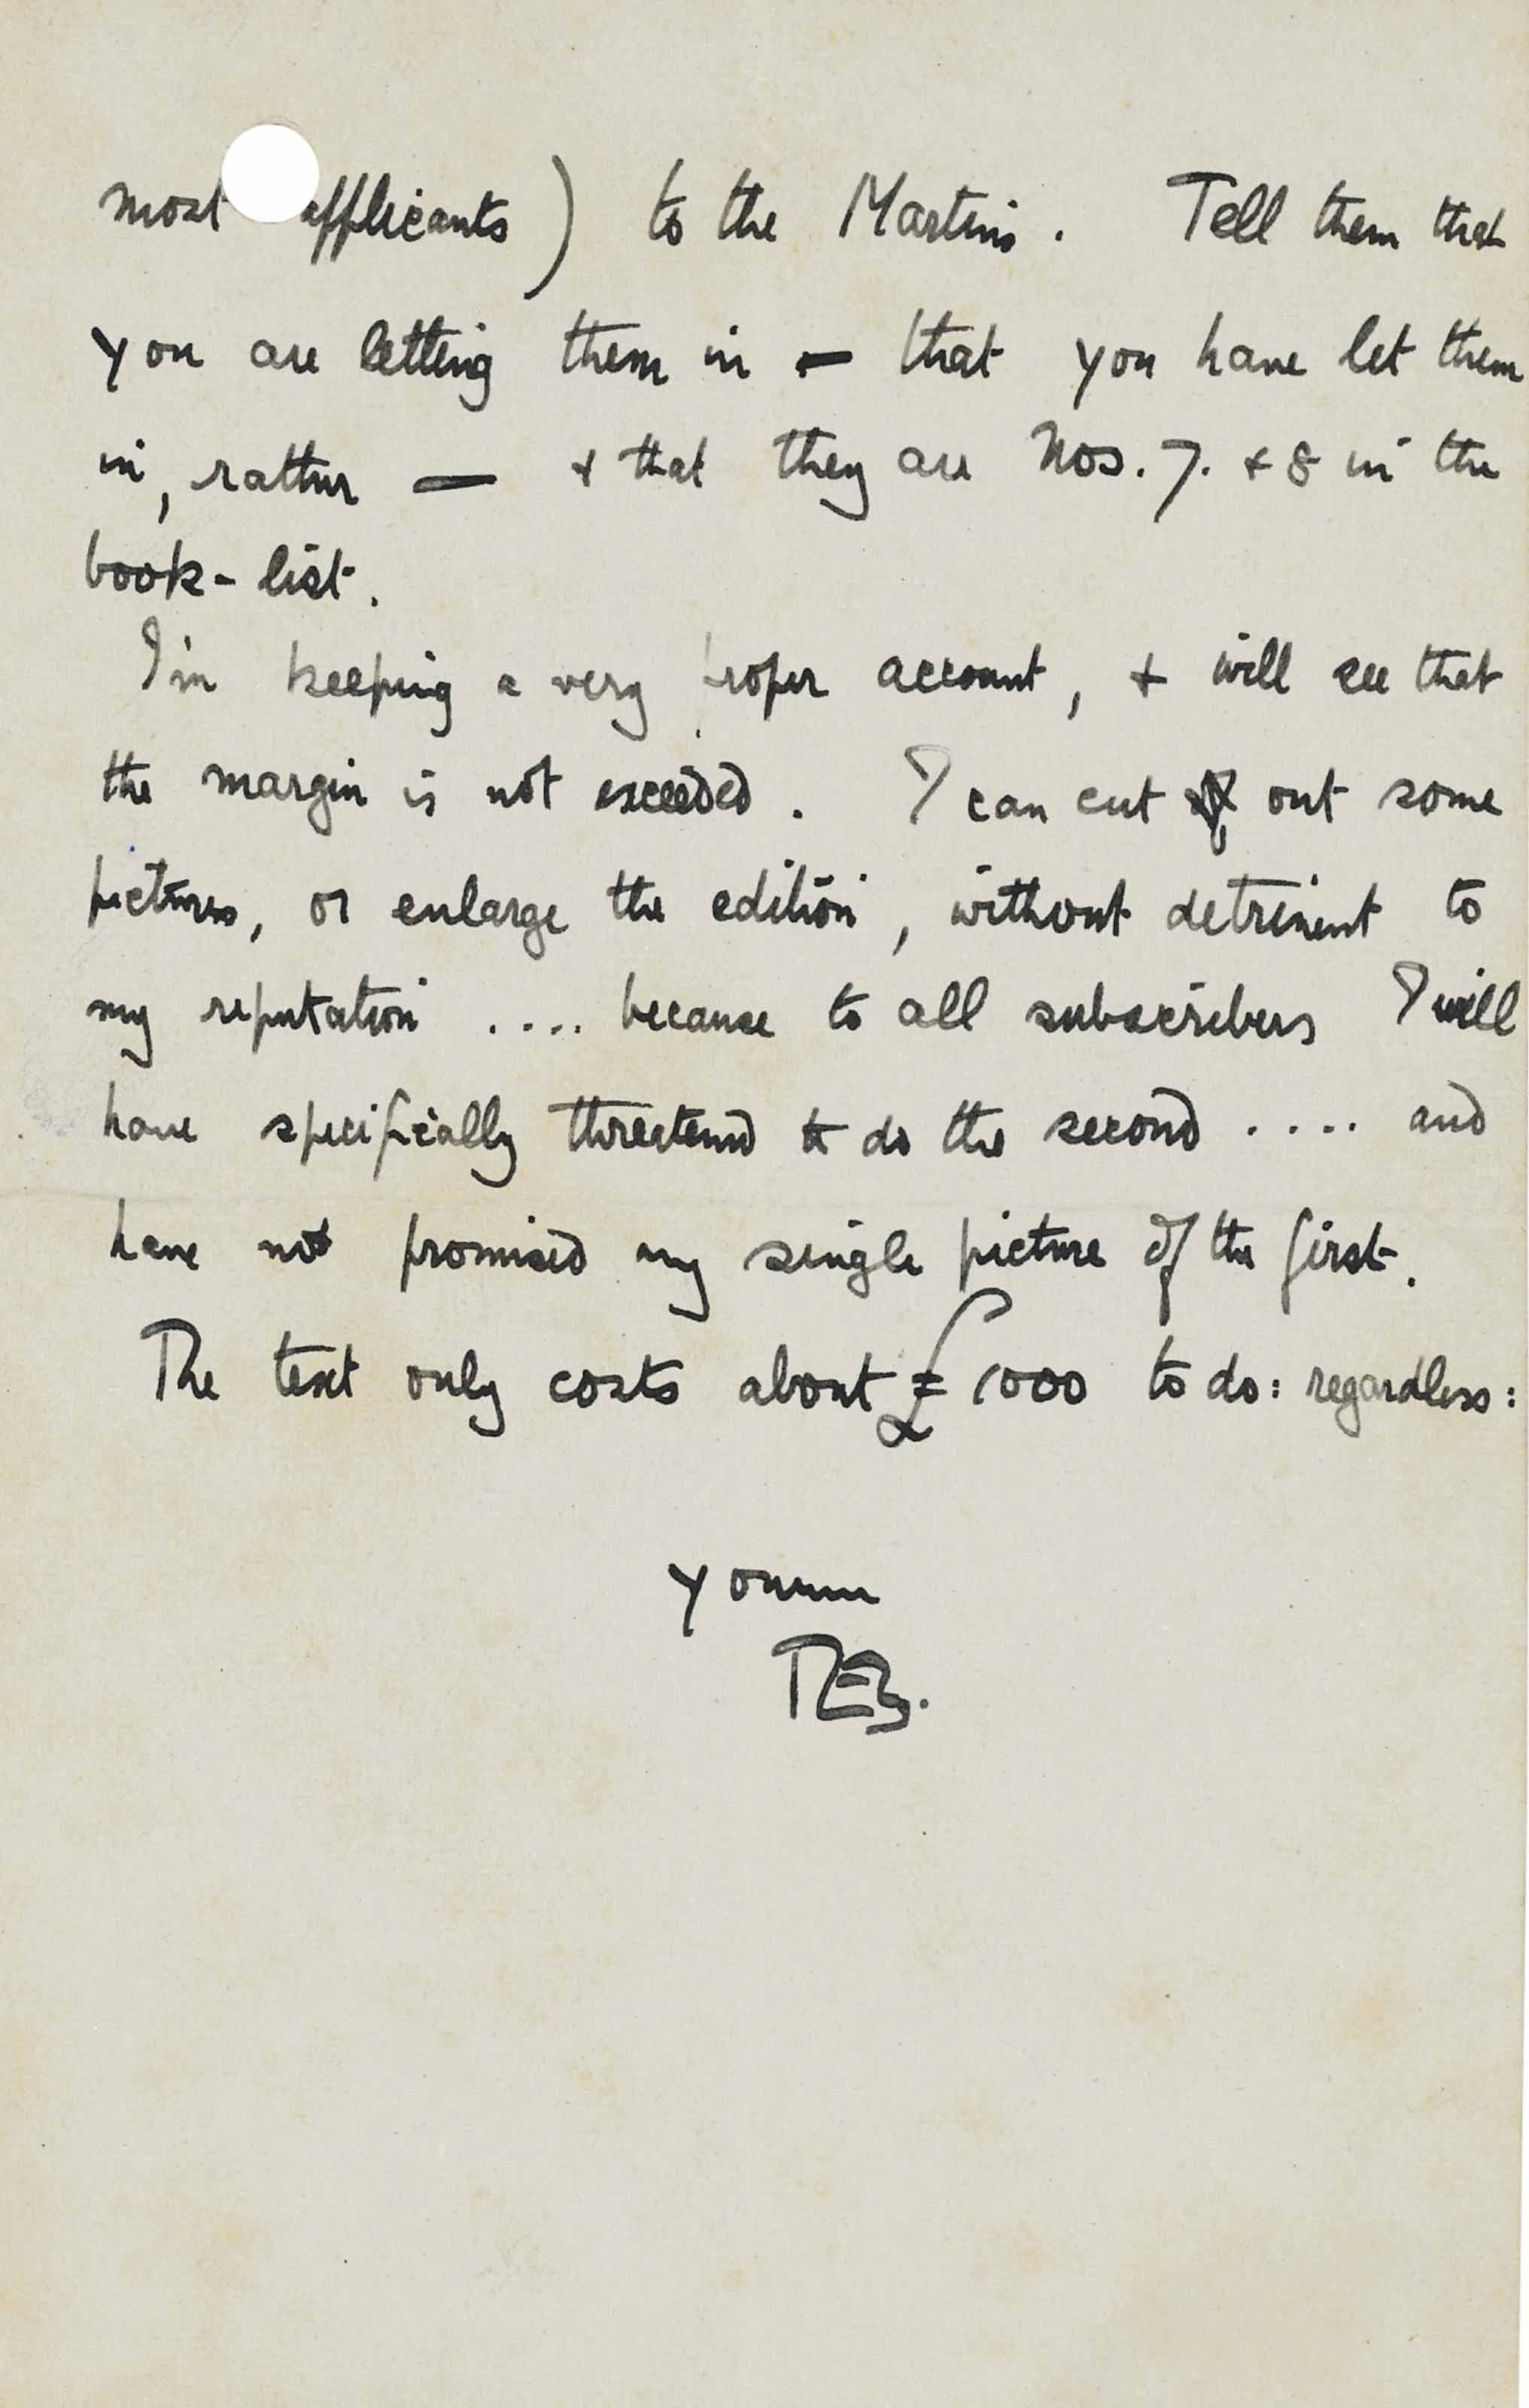 LAWRENCE, Thomas Edward (1888-1935). Autograph letter signed ('T.E.S.') to [Robin] Buxton, Clouds Hill, 28 July 1923, drafted on rectos, 2 pages, 8vo, bifolium (punch holes affecting the text in one place).